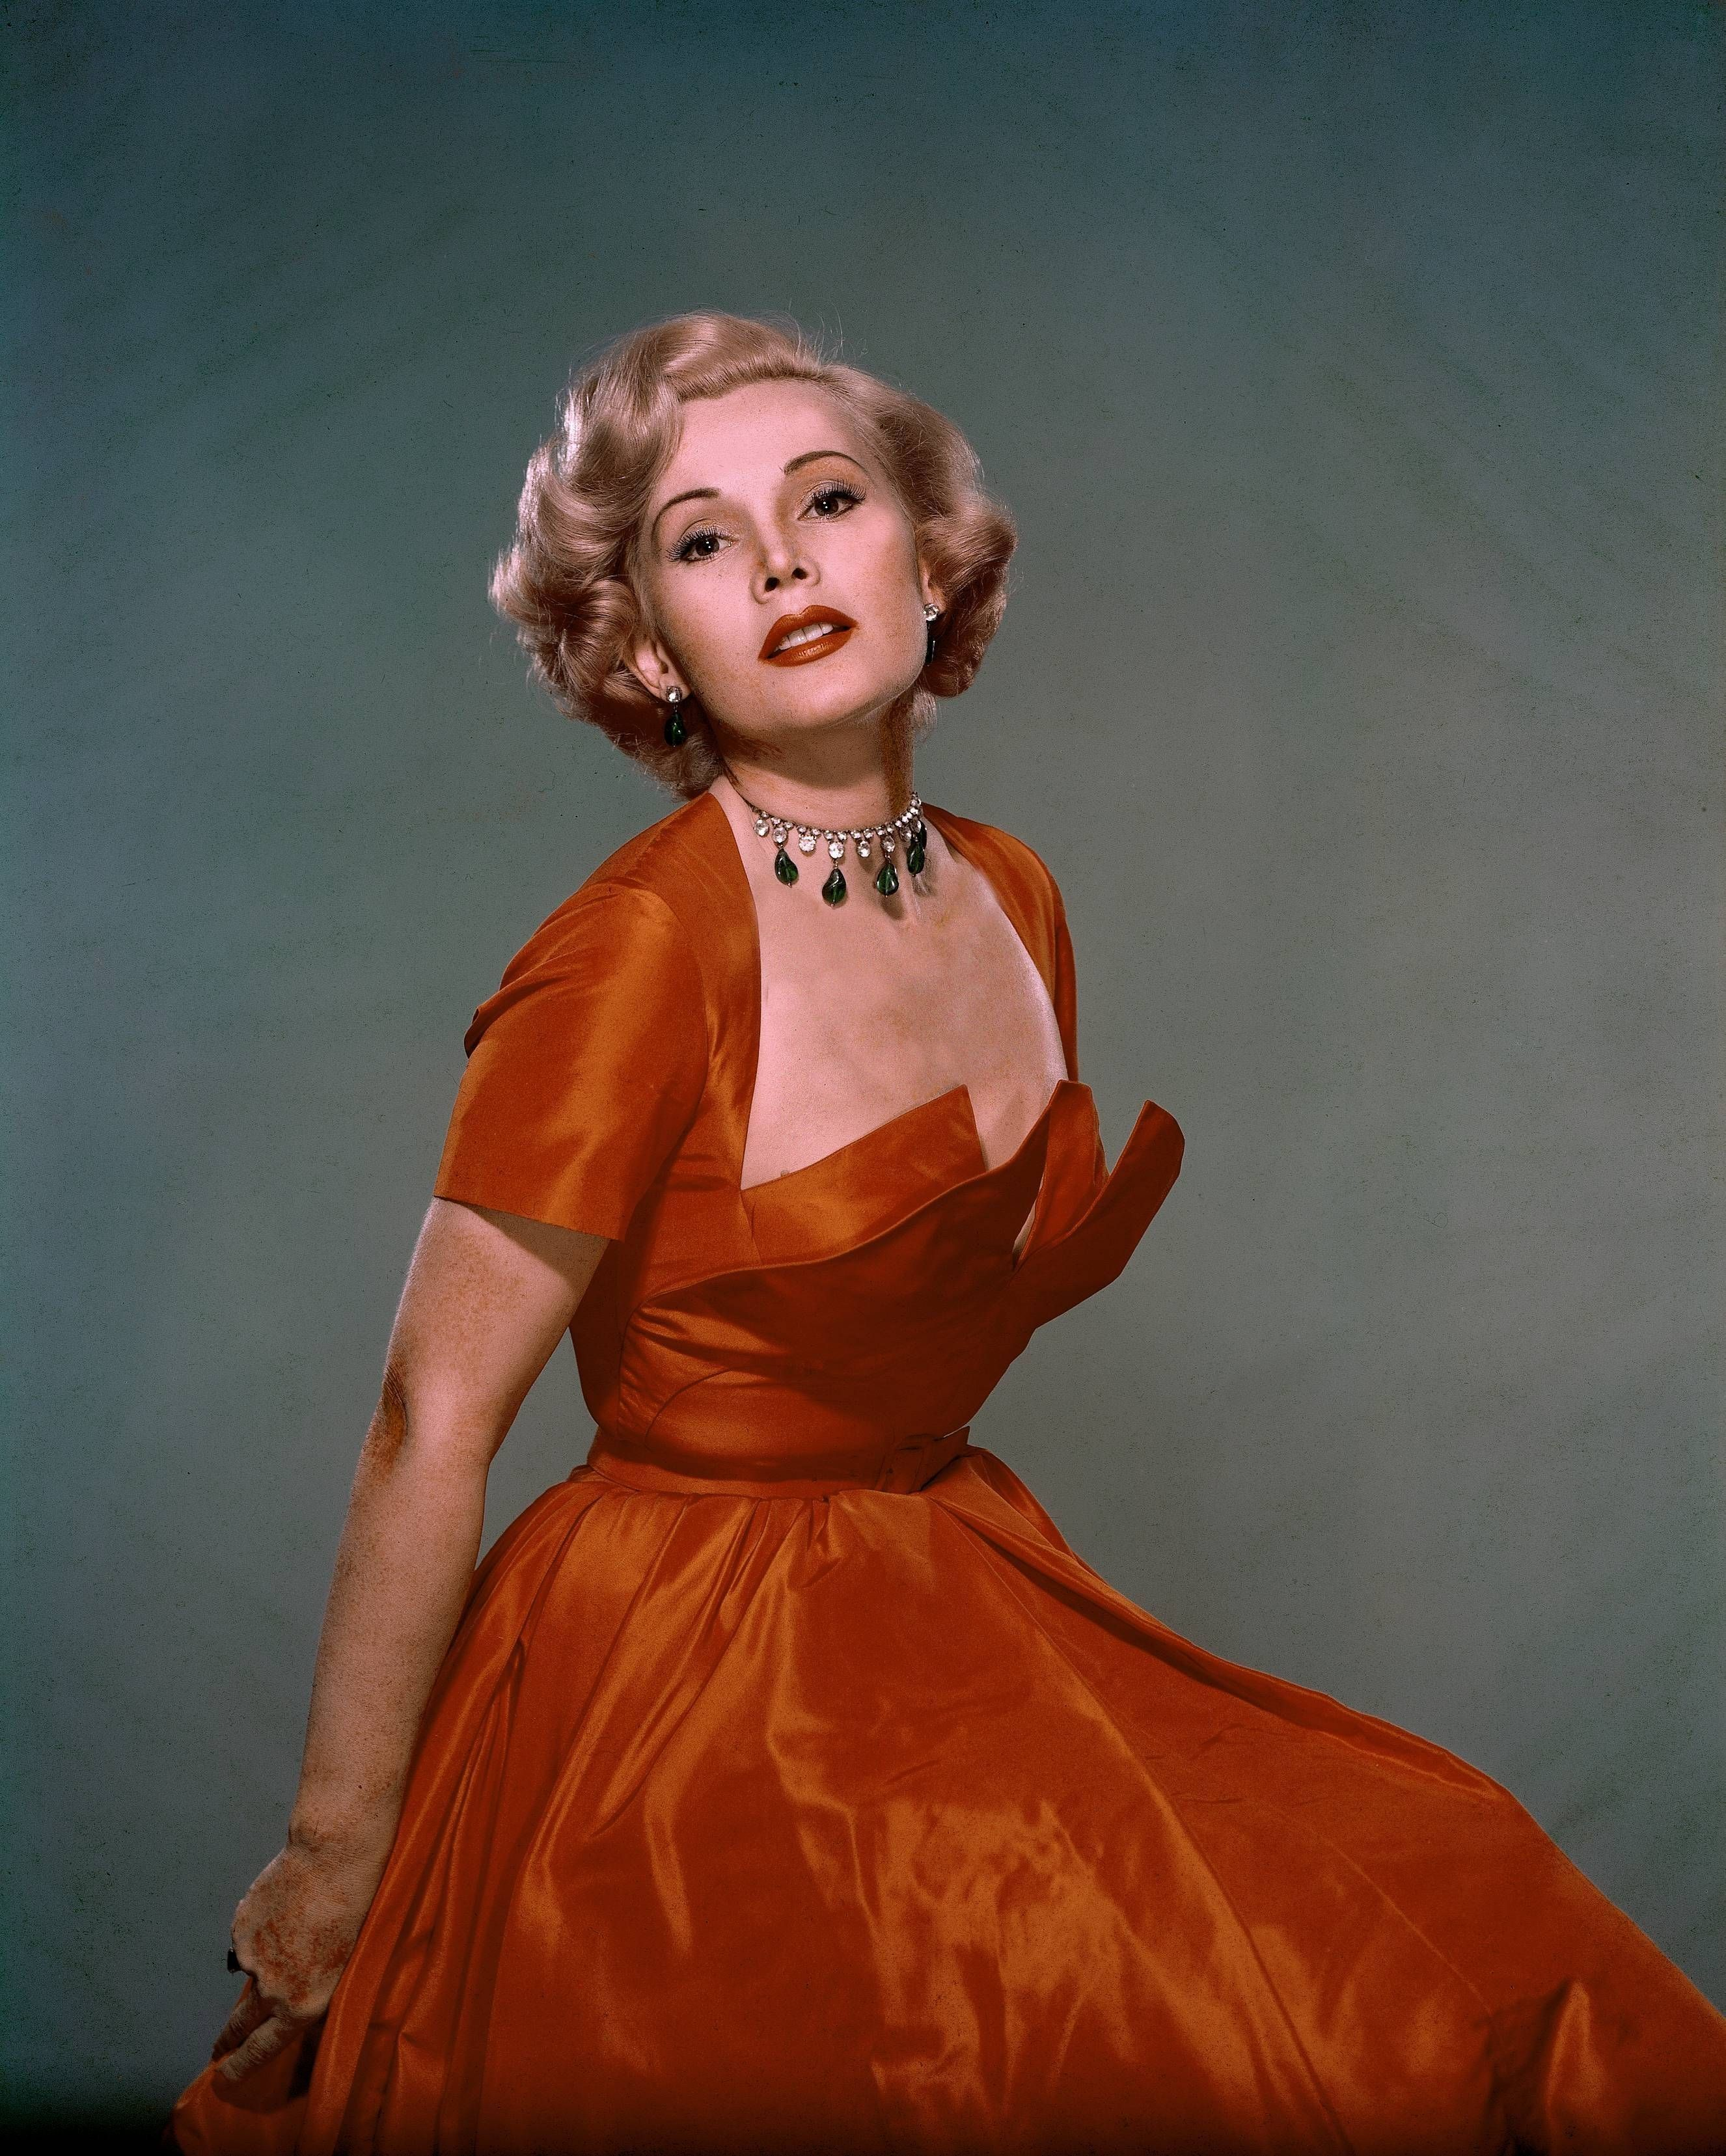 UNITED STATES - JANUARY 01:  Studio portrait of the French actress Zsa Zsa GABOR between 1950 and 1955.  (Photo by Keystone-France/Gamma-Keystone via Getty Images)